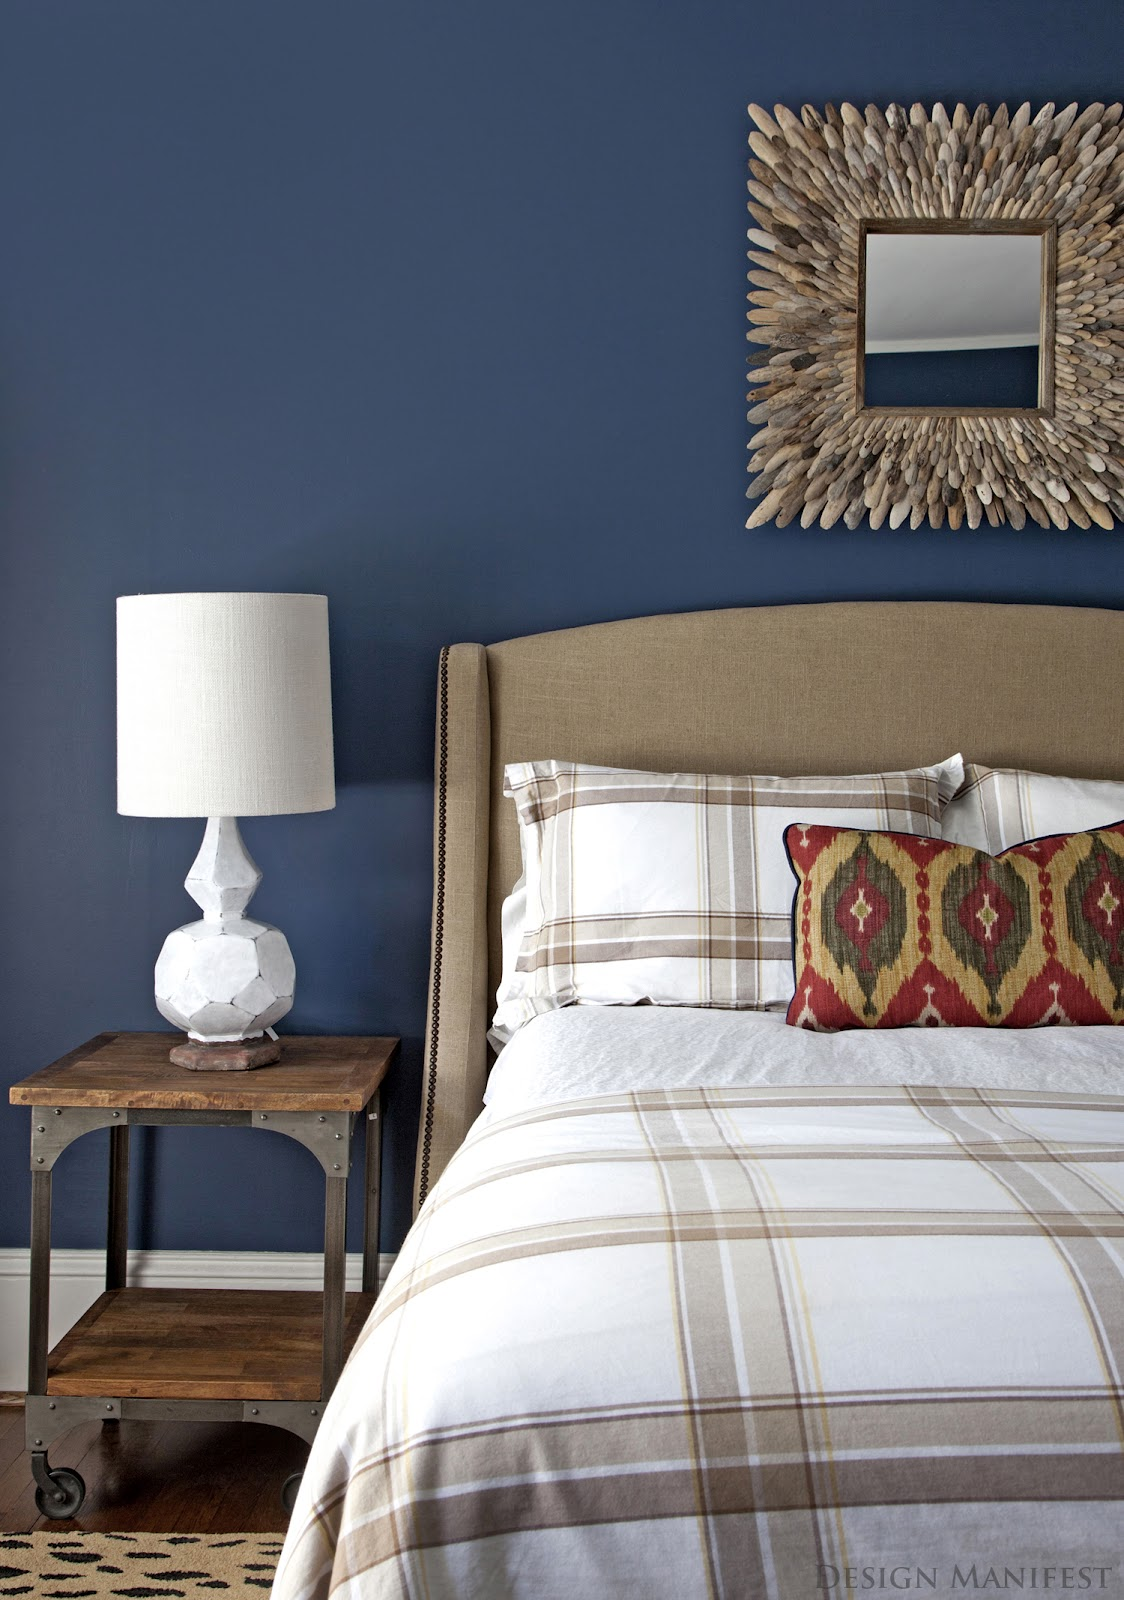 These 10 bedrooms show why blue is the most popular color Most popular color for bedroom walls